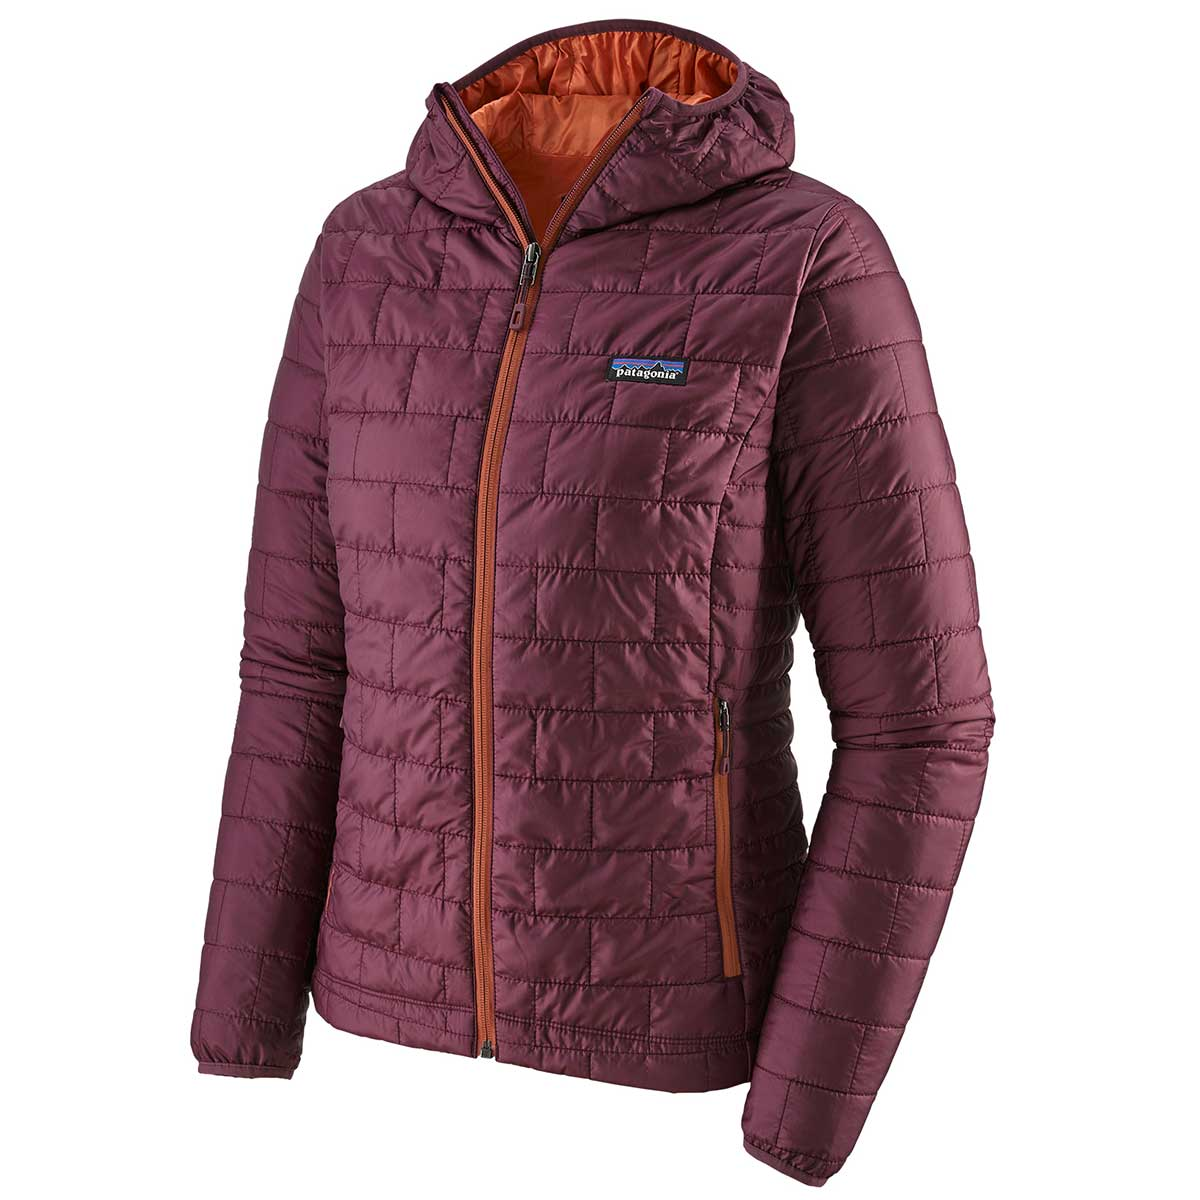 Patagonia women's Nano Puff Hoody in Light Balsamic front view